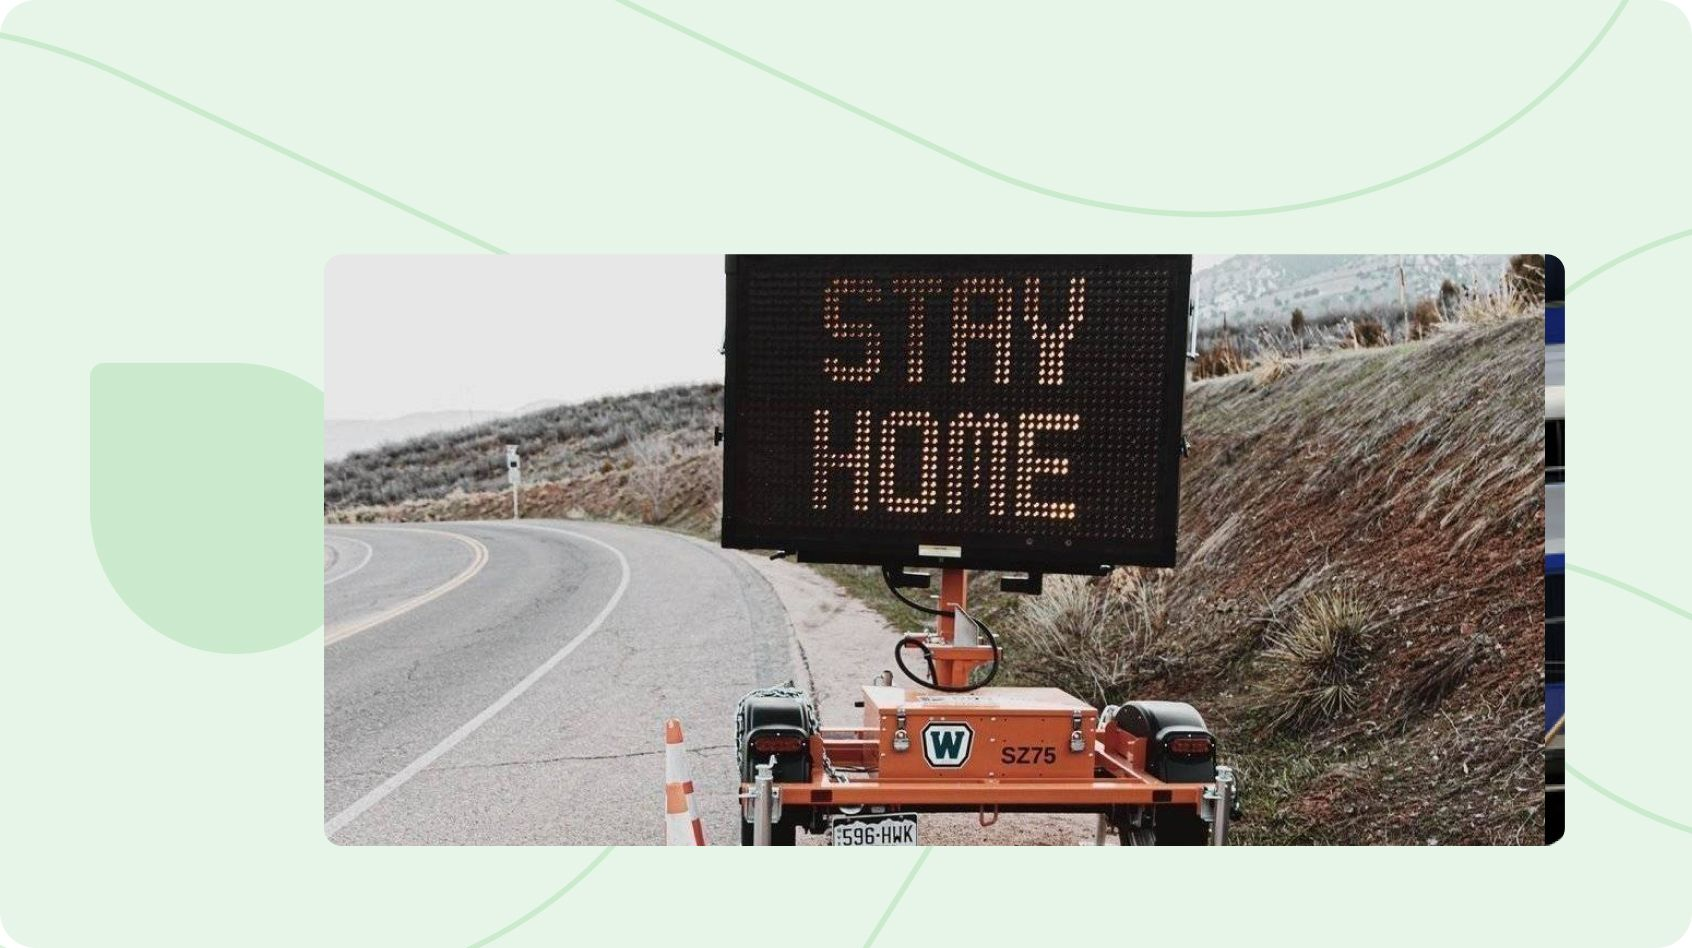 Stay Home Sign on Road